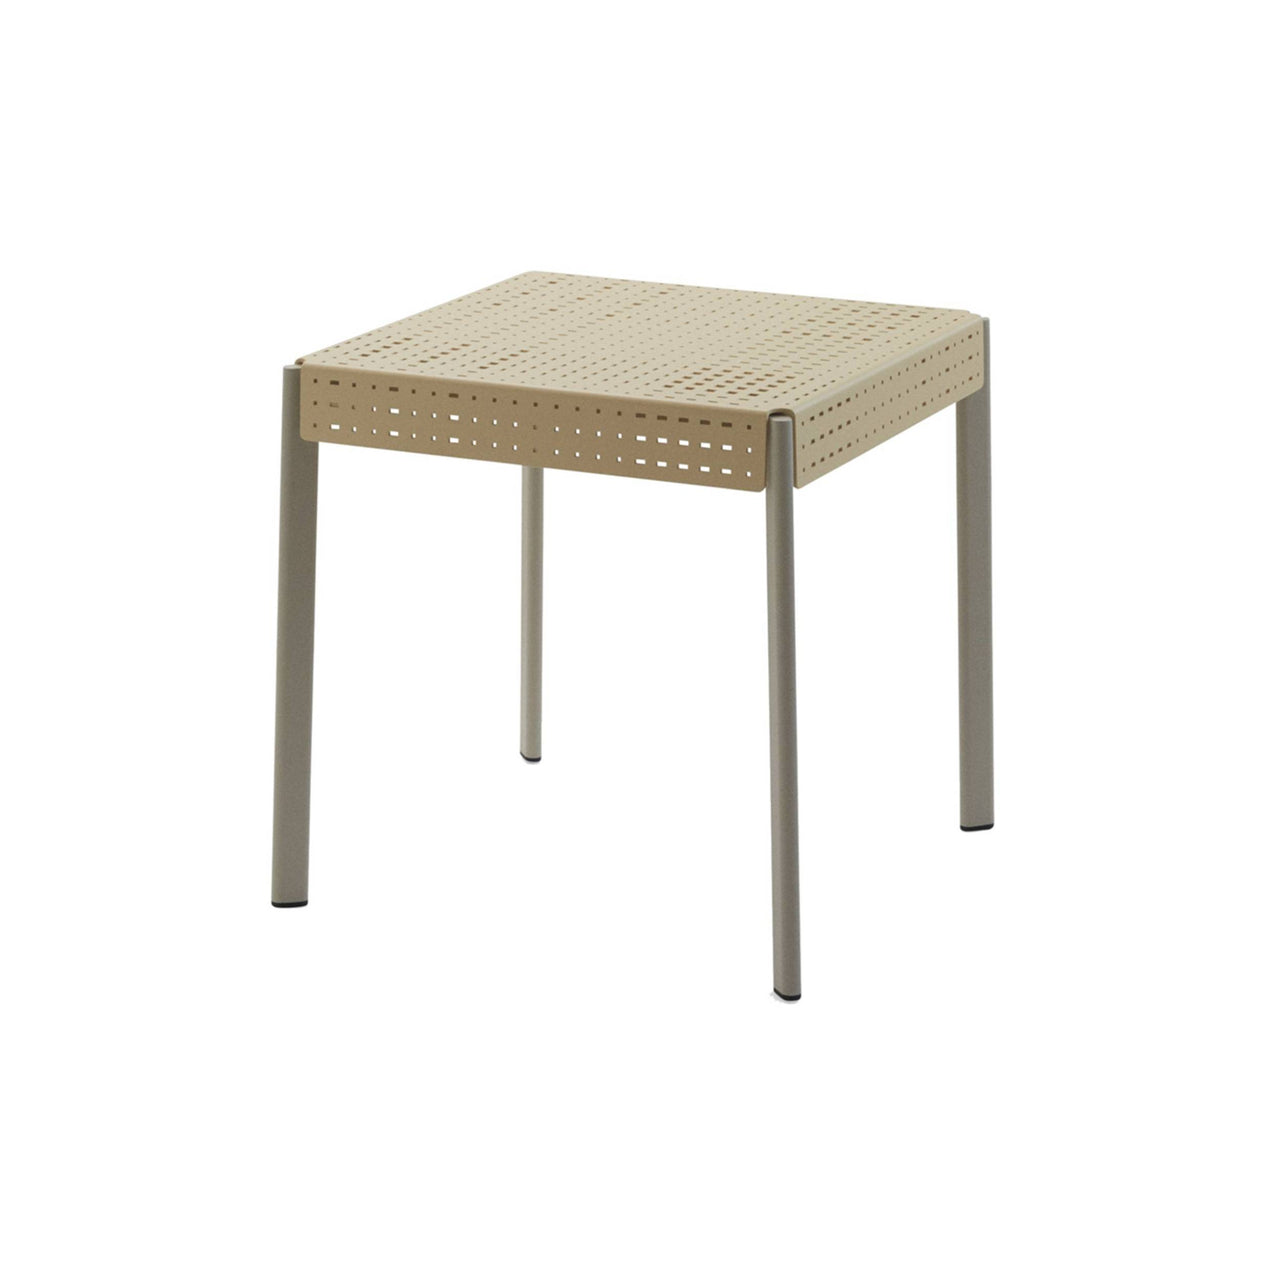 Gerda Table: Small